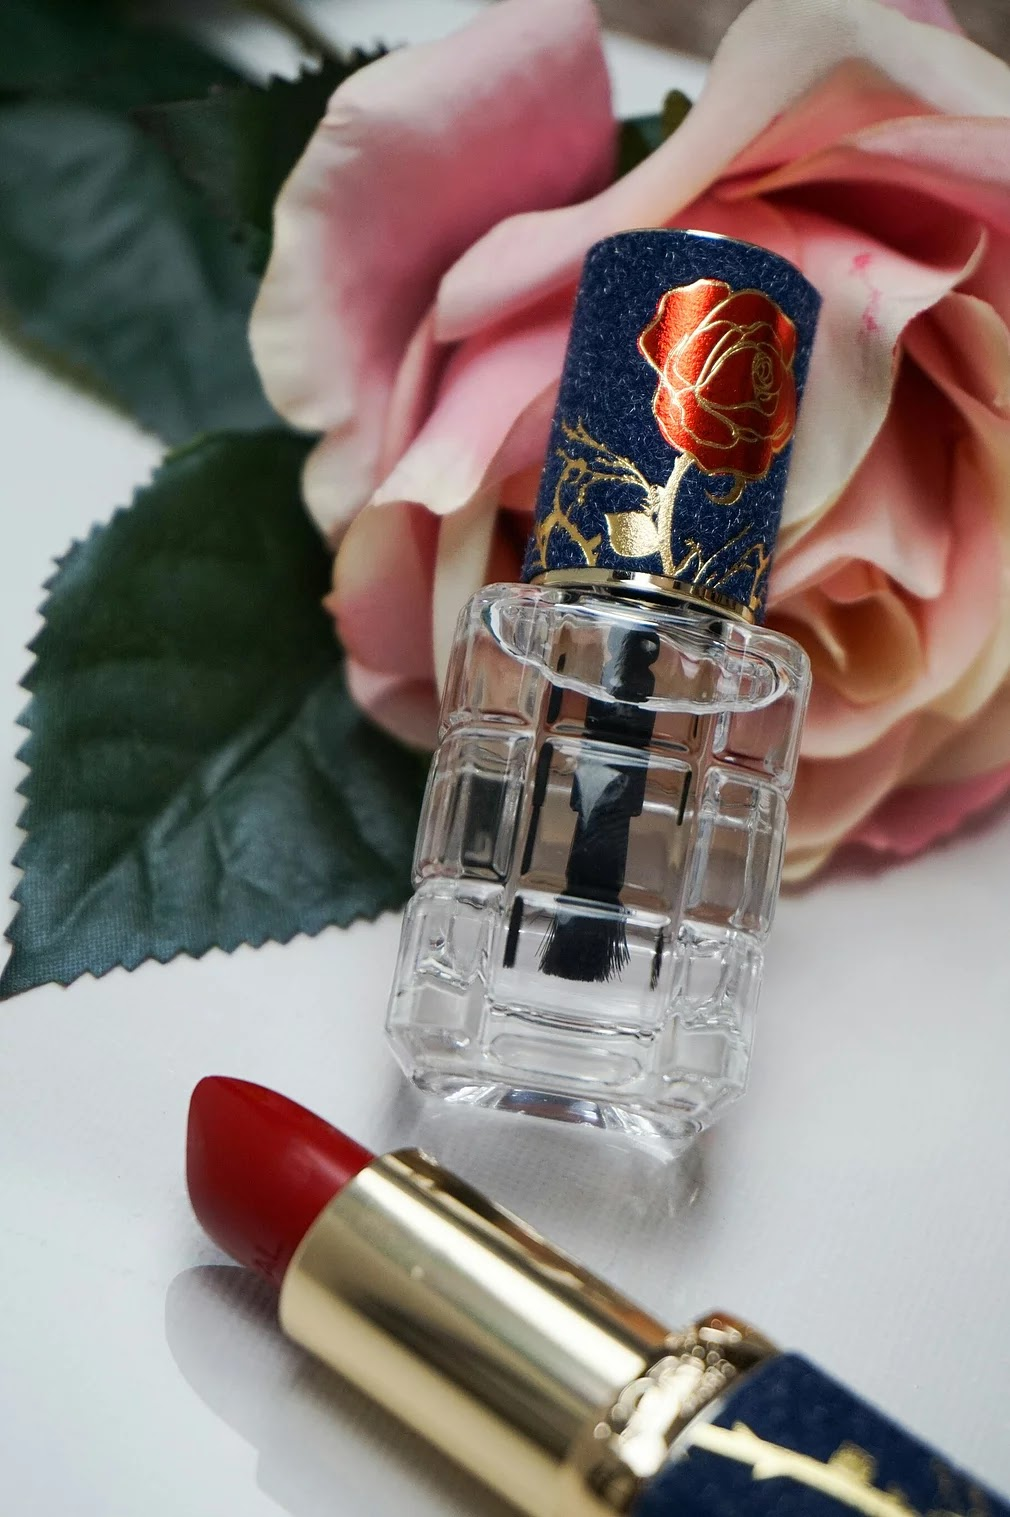 Beauty and the Beast the Rose nail polish